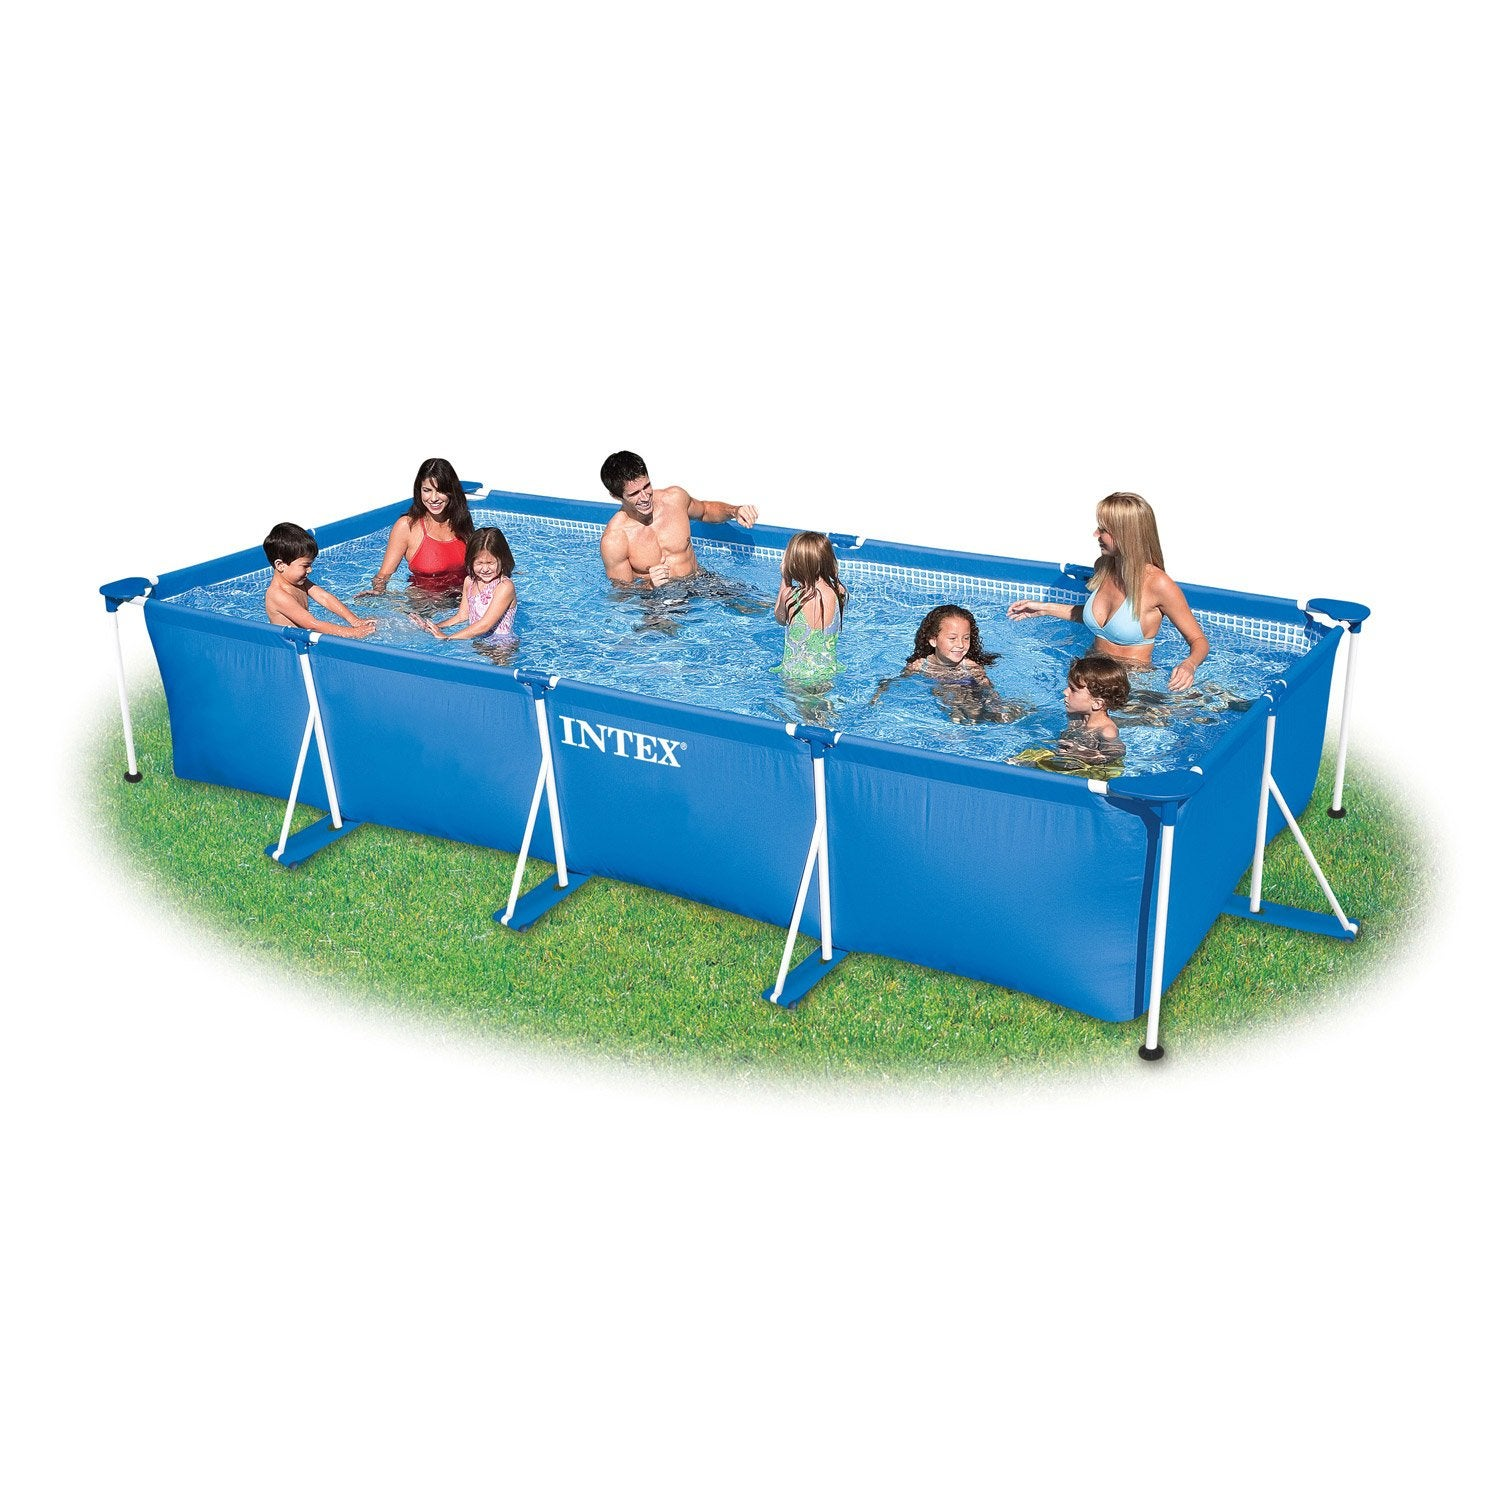 Piscine hors sol autoportante tubulaire intex l x l for Piscine hors sol 3x4m